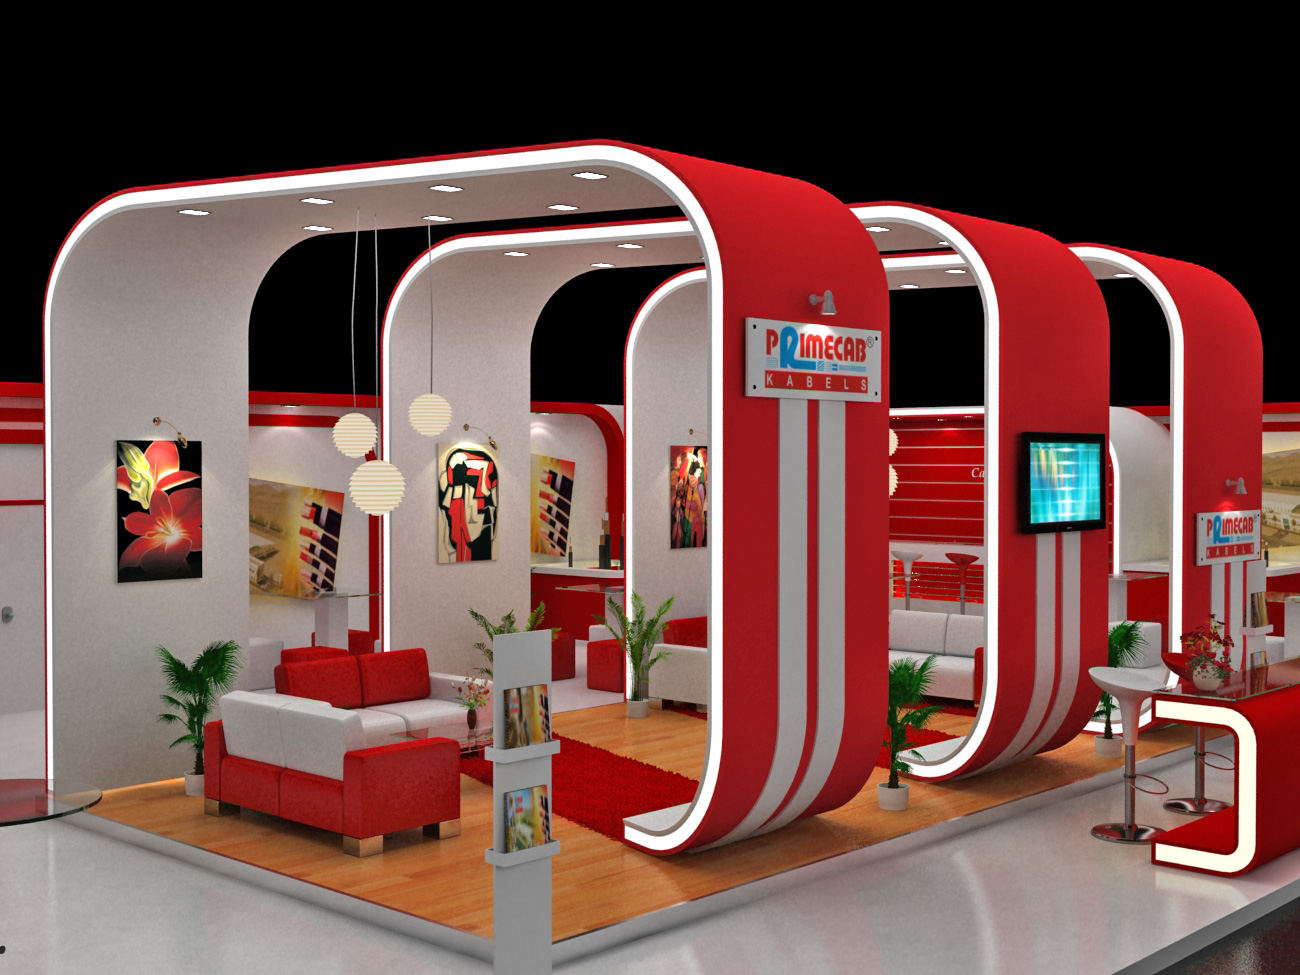 Exhibition stall designs by dnyansagar sapkale at for International decor services